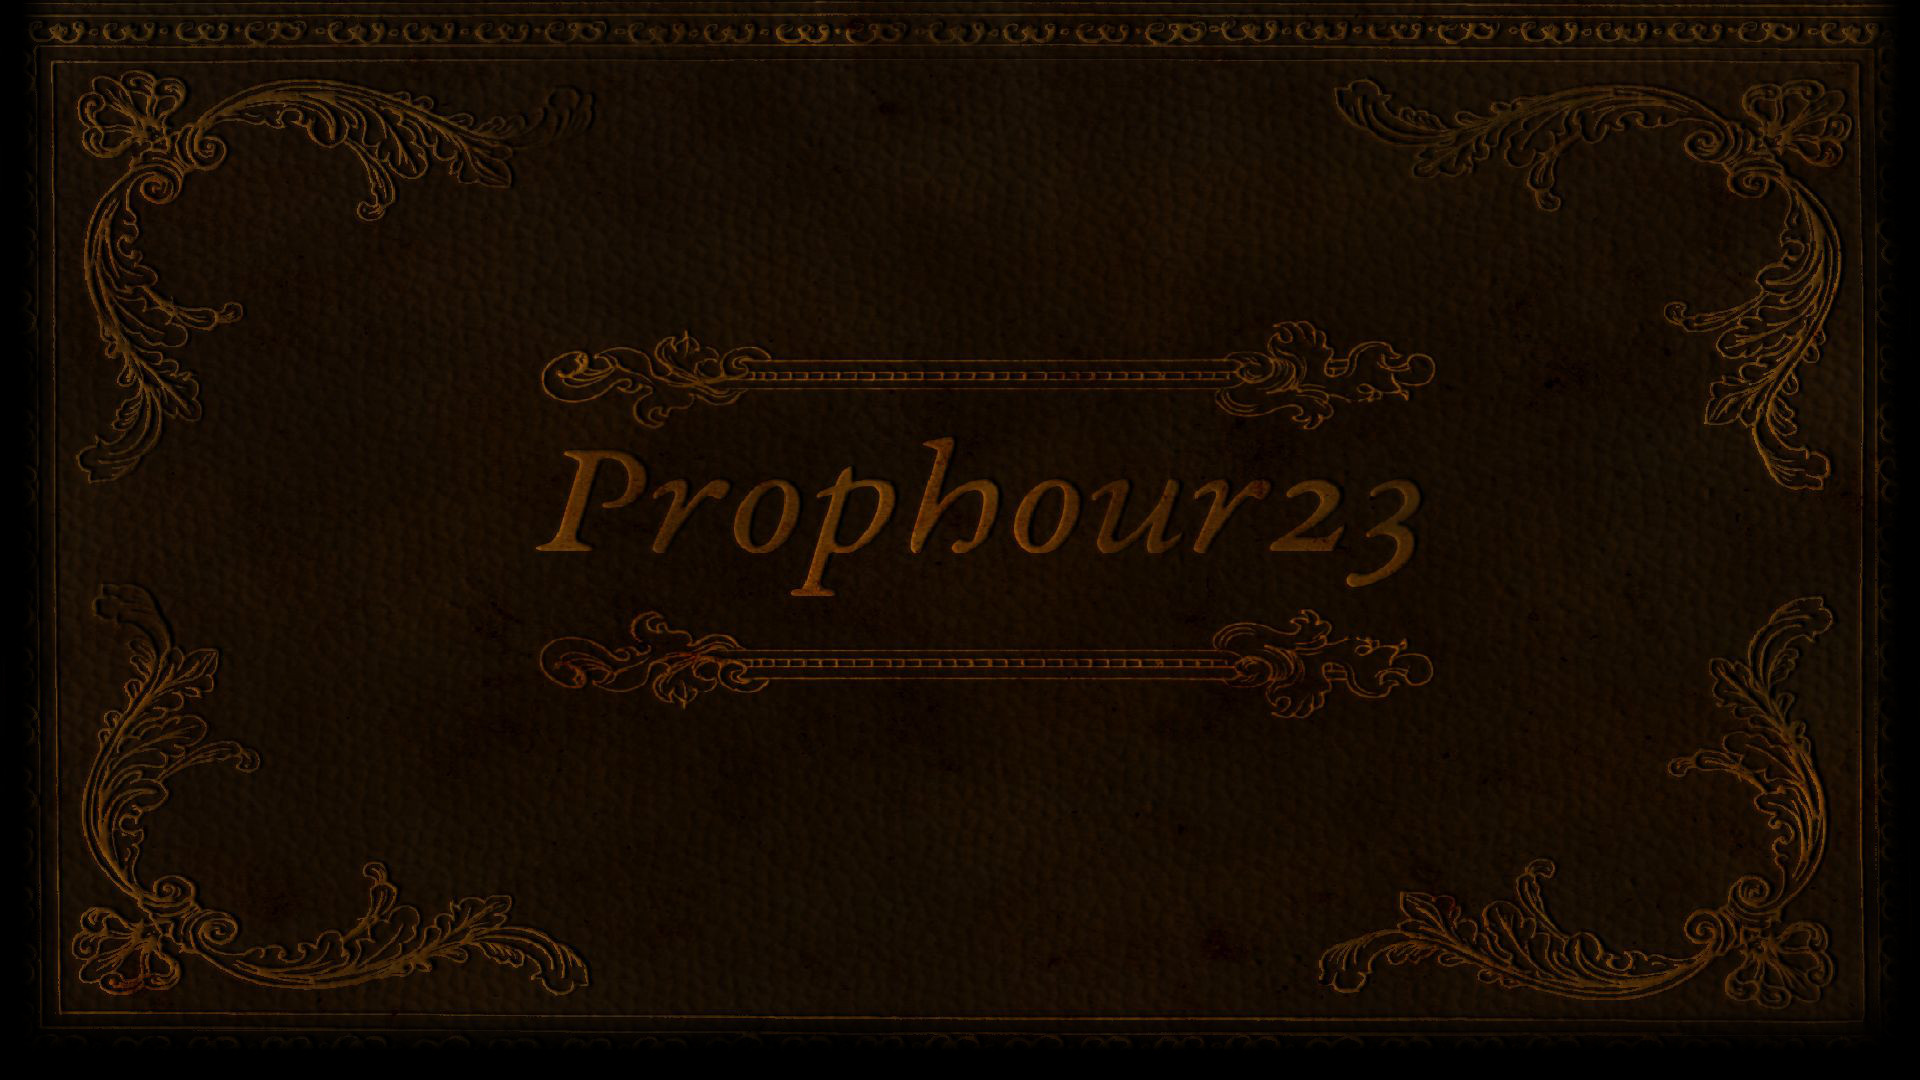 Book Cover Background Images : Image prophour background book cover g steam